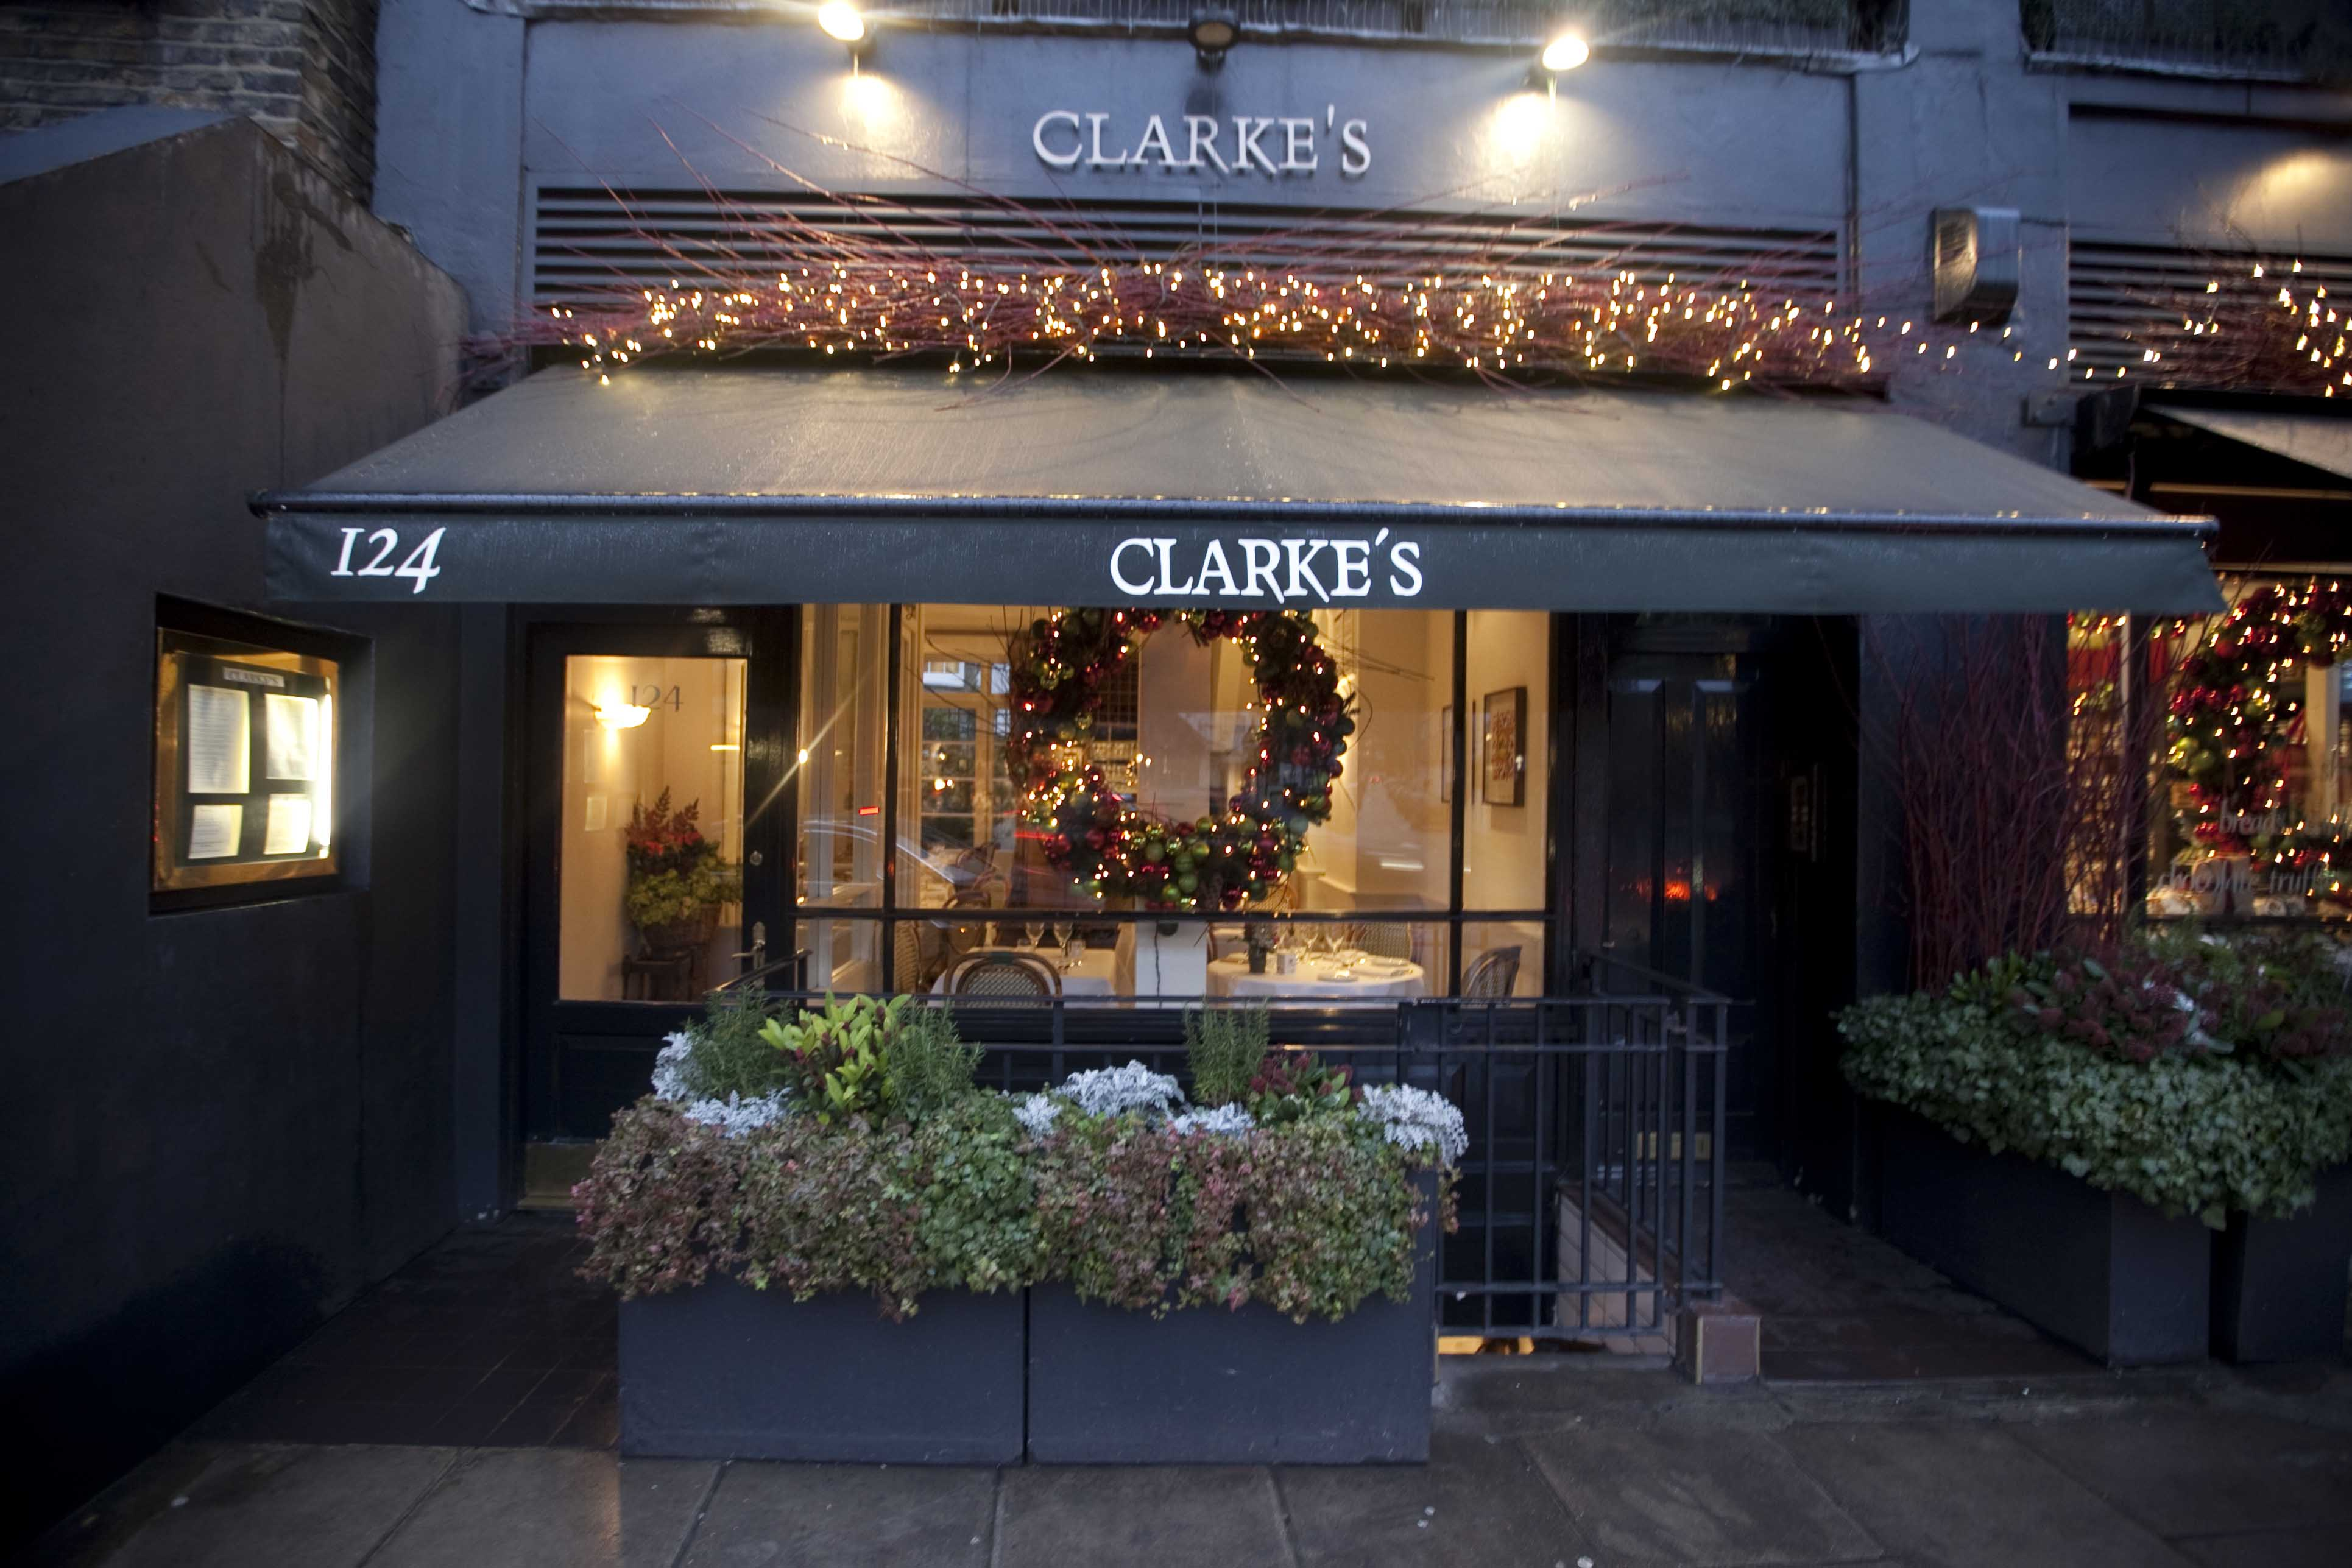 Image of Clarke's Restaurant